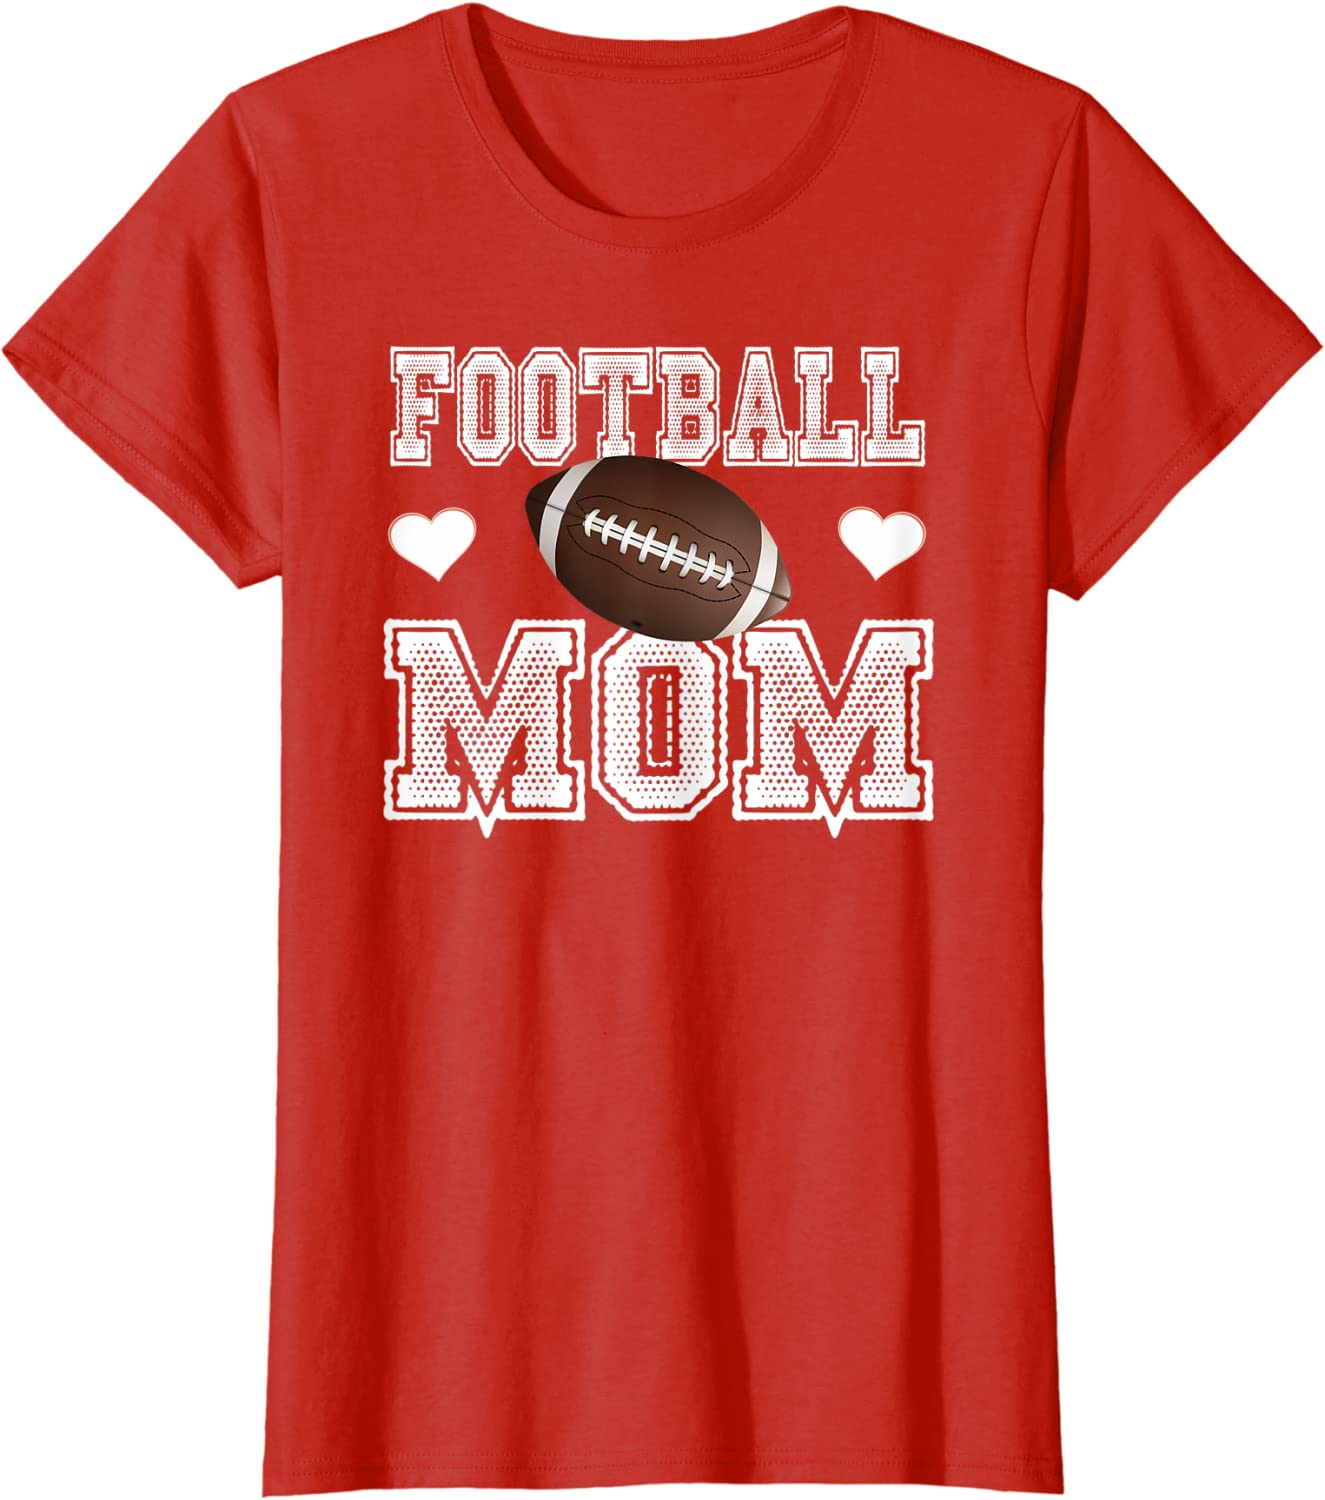 Football Tshirts Let/'s Hear It For The Boys Football Shirts for Women Football Shirts Womens Football Shirts Womens Tshirts